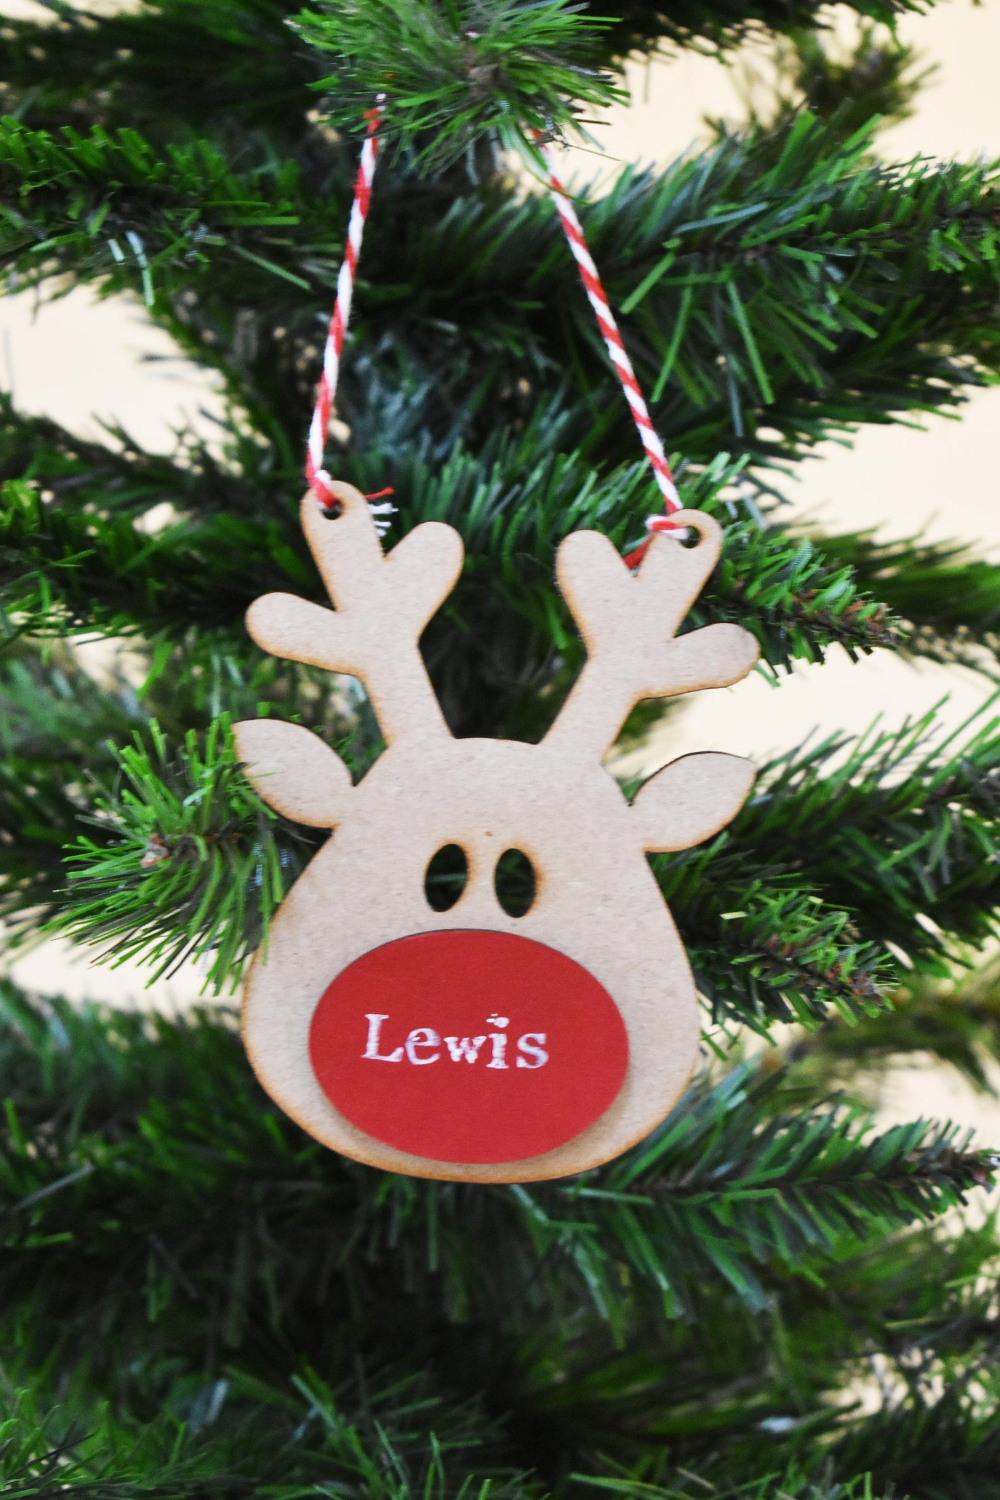 Rustic Personalised Christmas Tree Ornament Custom Name Reindeer Holiday Decor Personalized Decoration Wooden Baubles Xmas Stag Bauble Personalized Christmas Tree Ornament Reindeer Holiday Decor Personalized Christmas